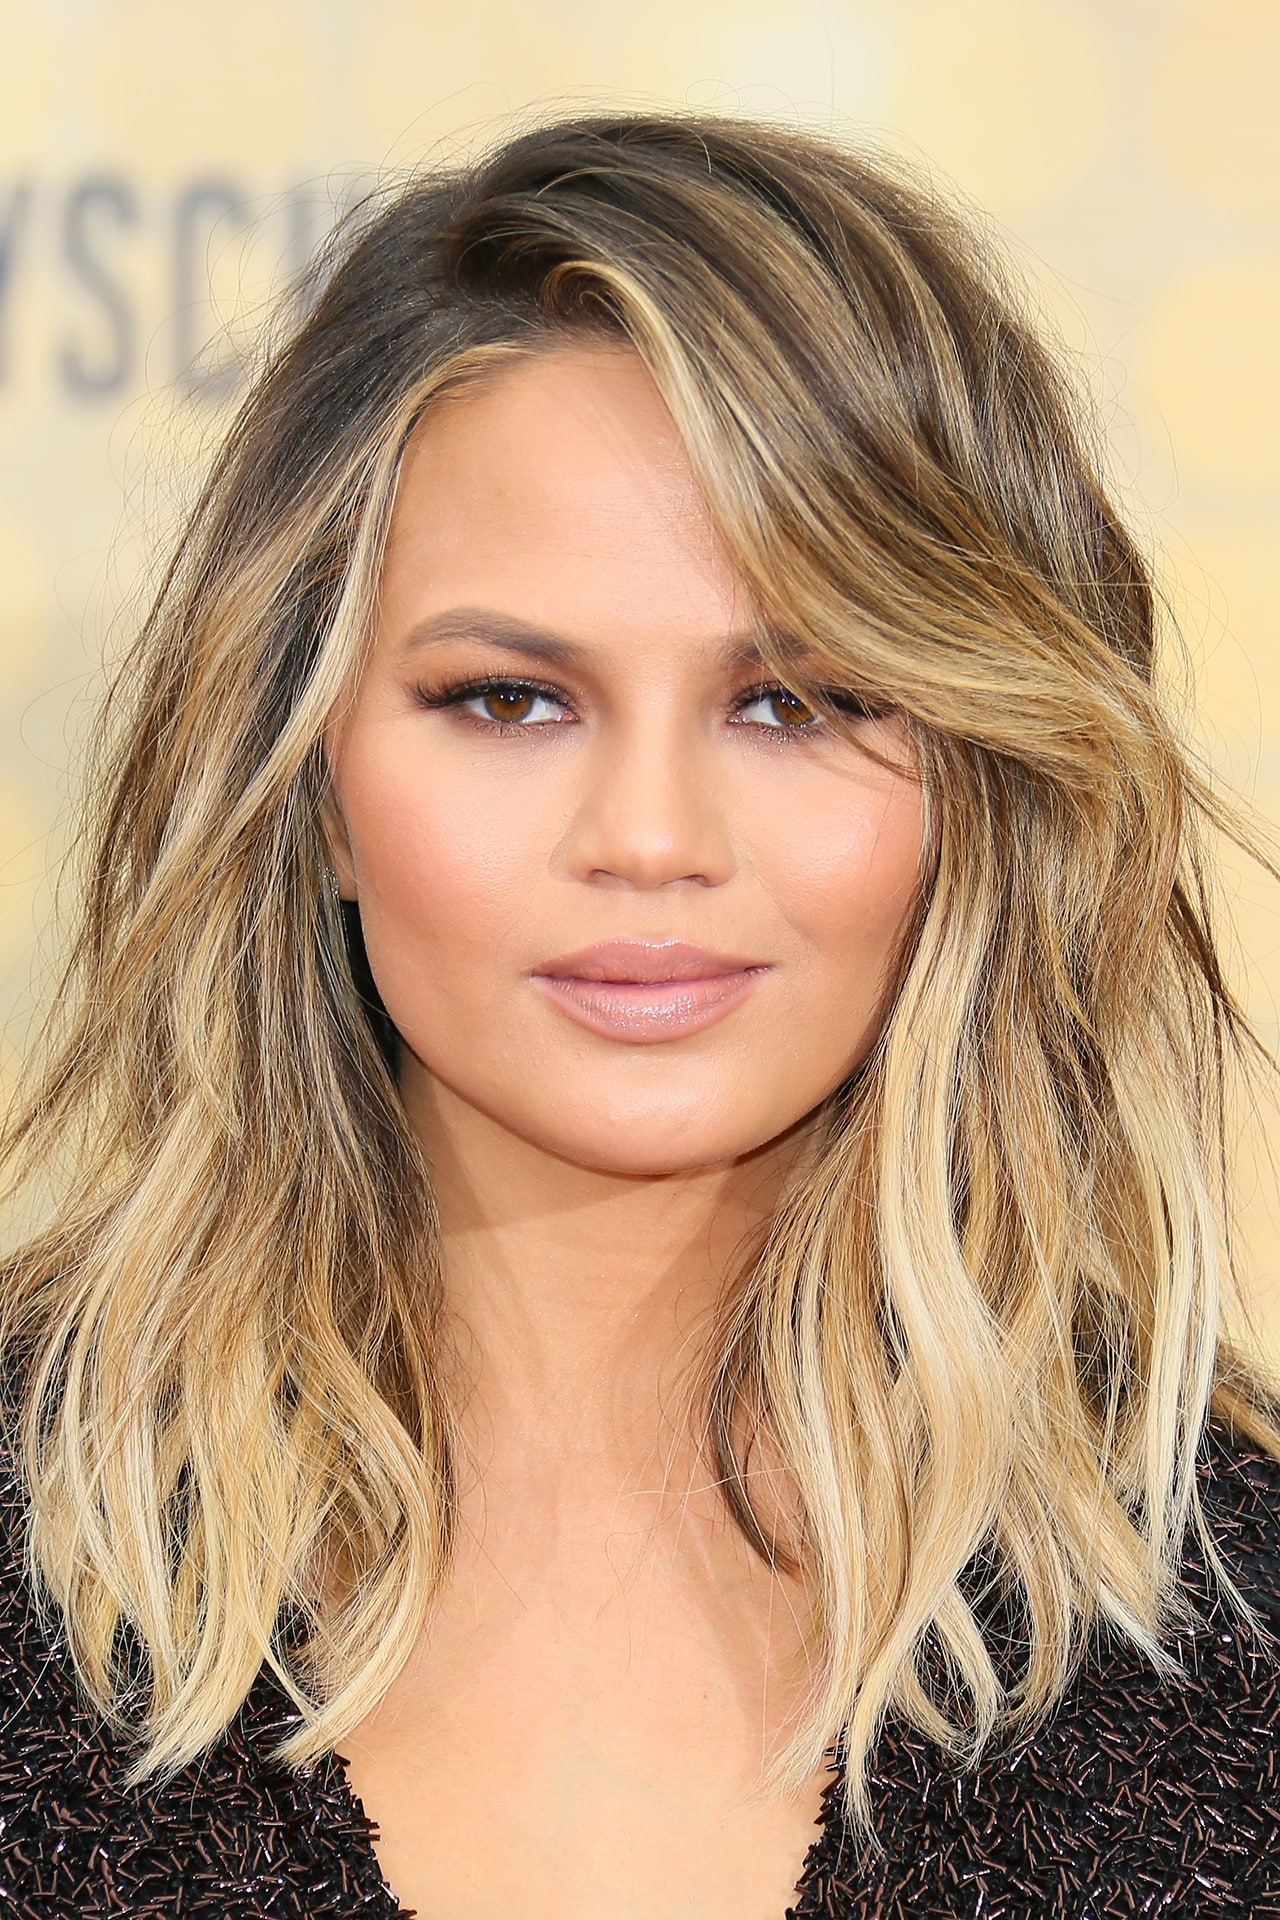 Chrissy Teigen's facialist shares six lessons in launching a skincare brand